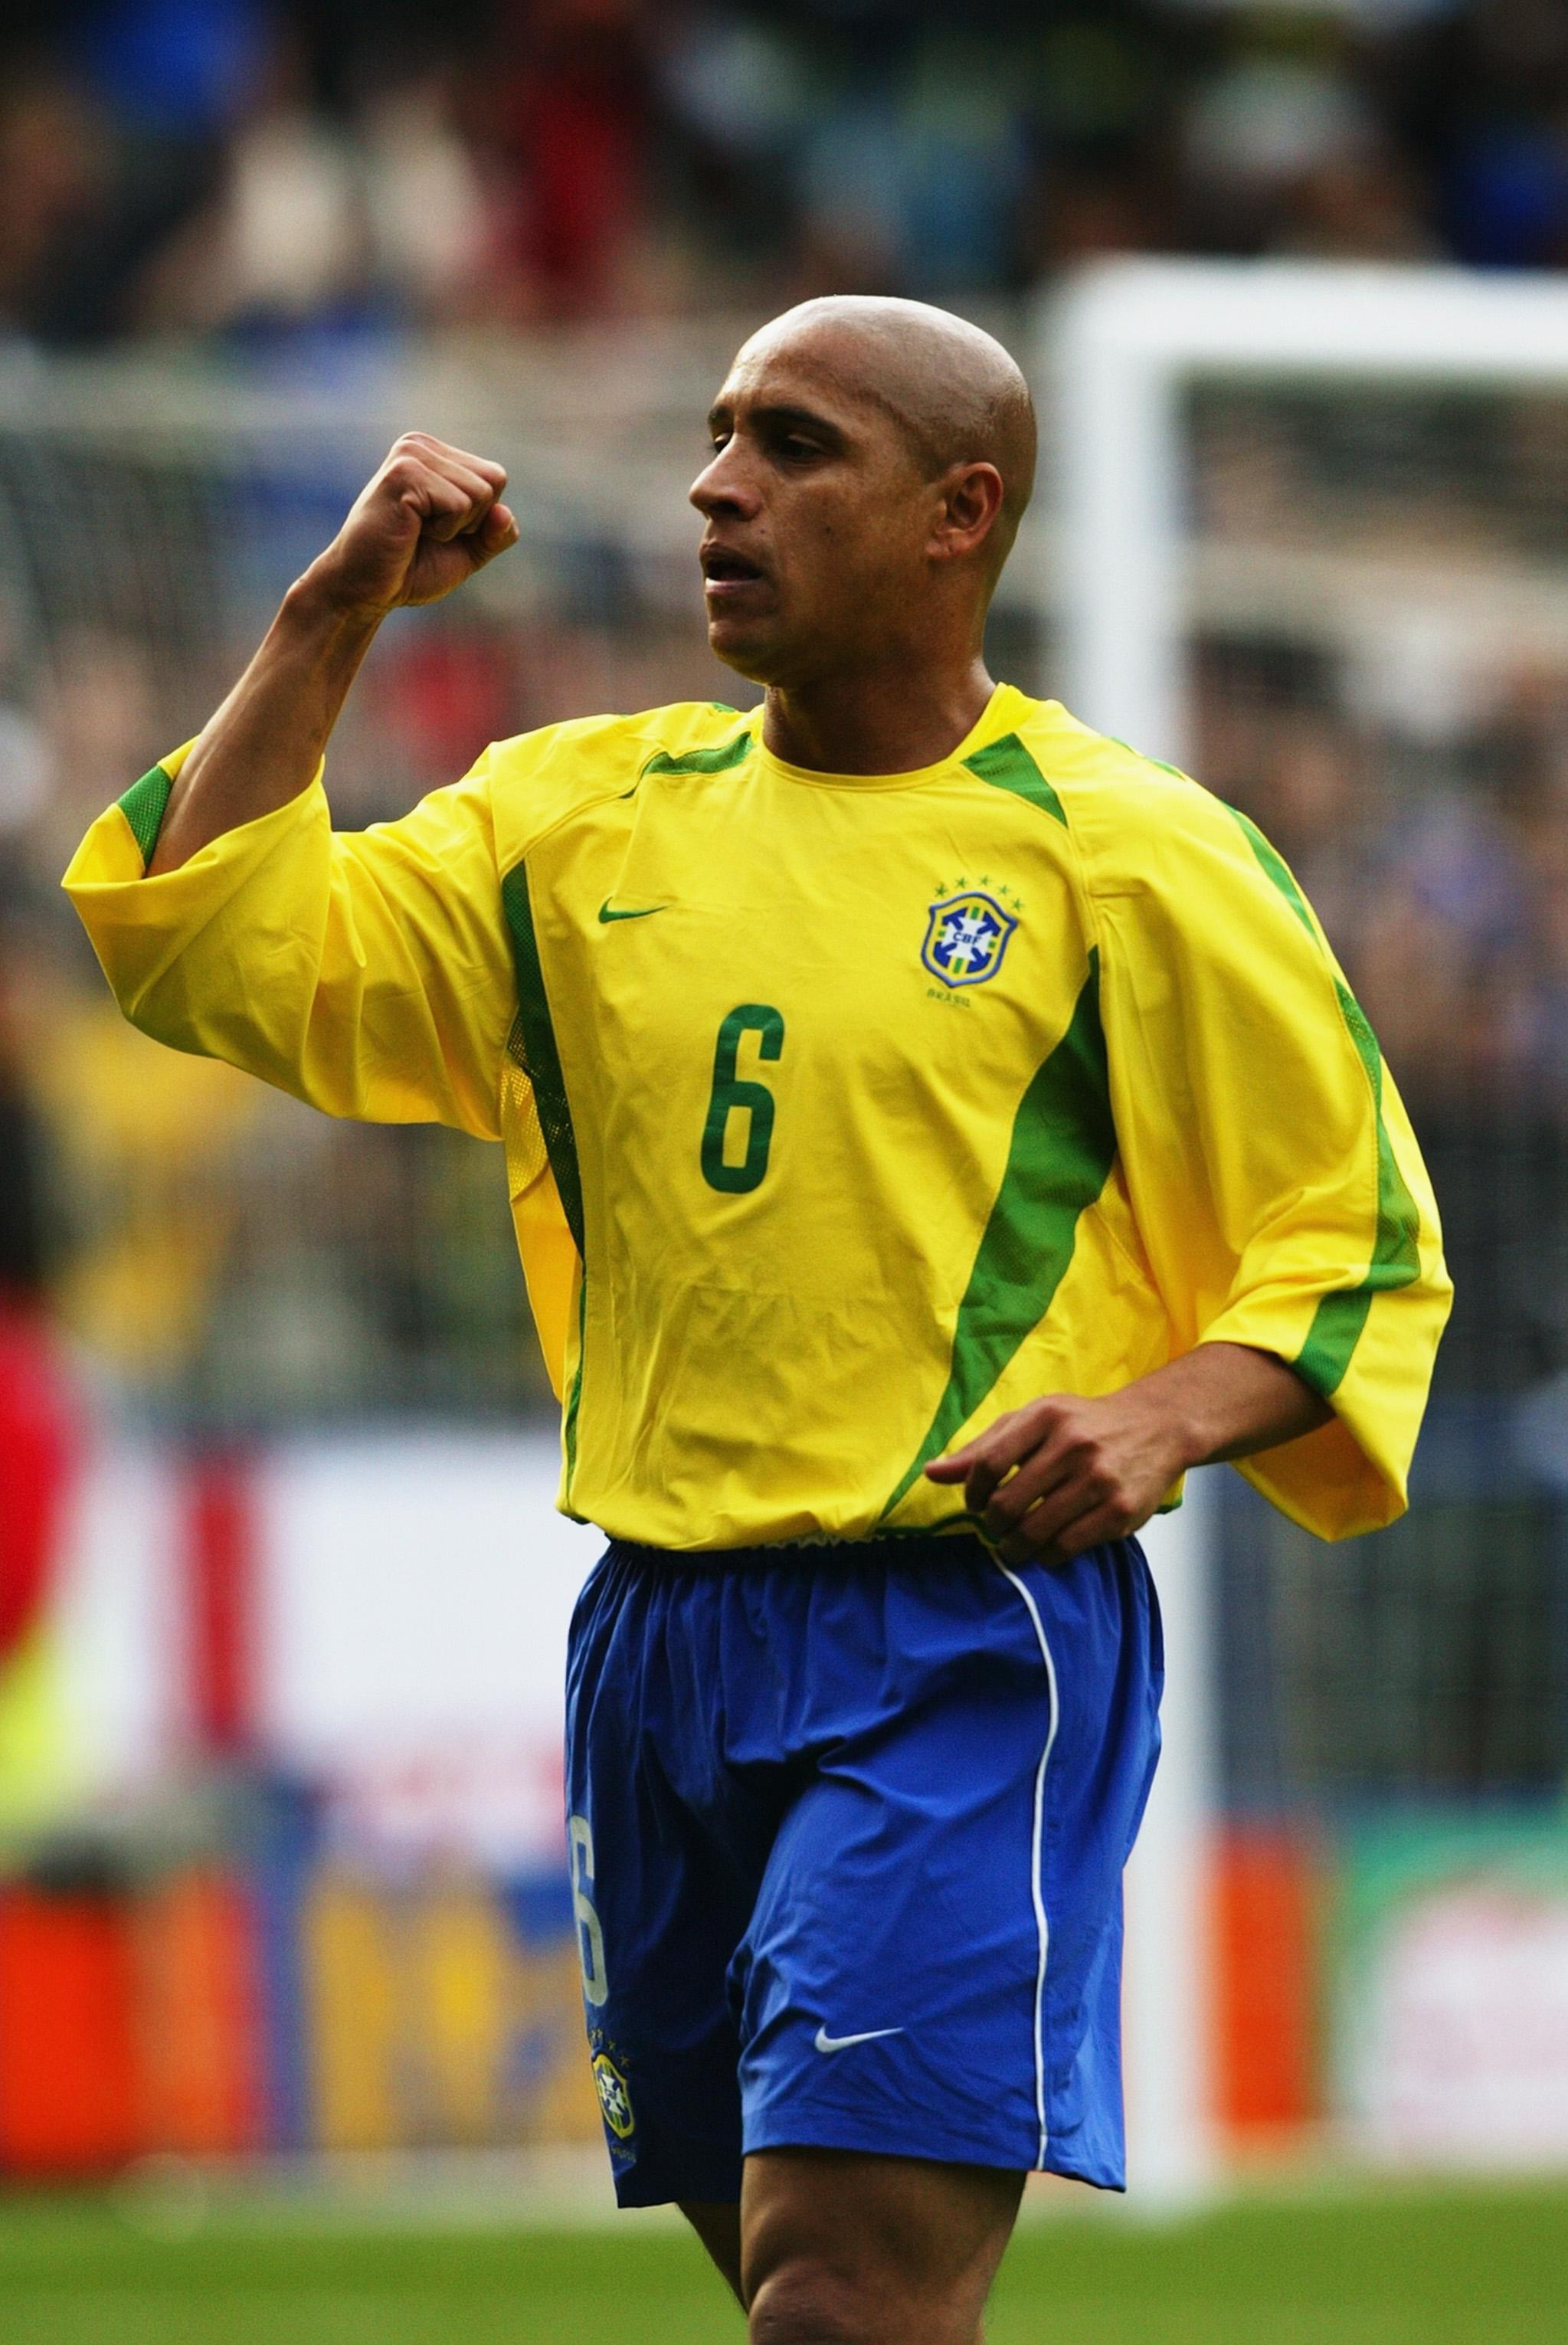 Is Carlos the greatest left-back of all-time?